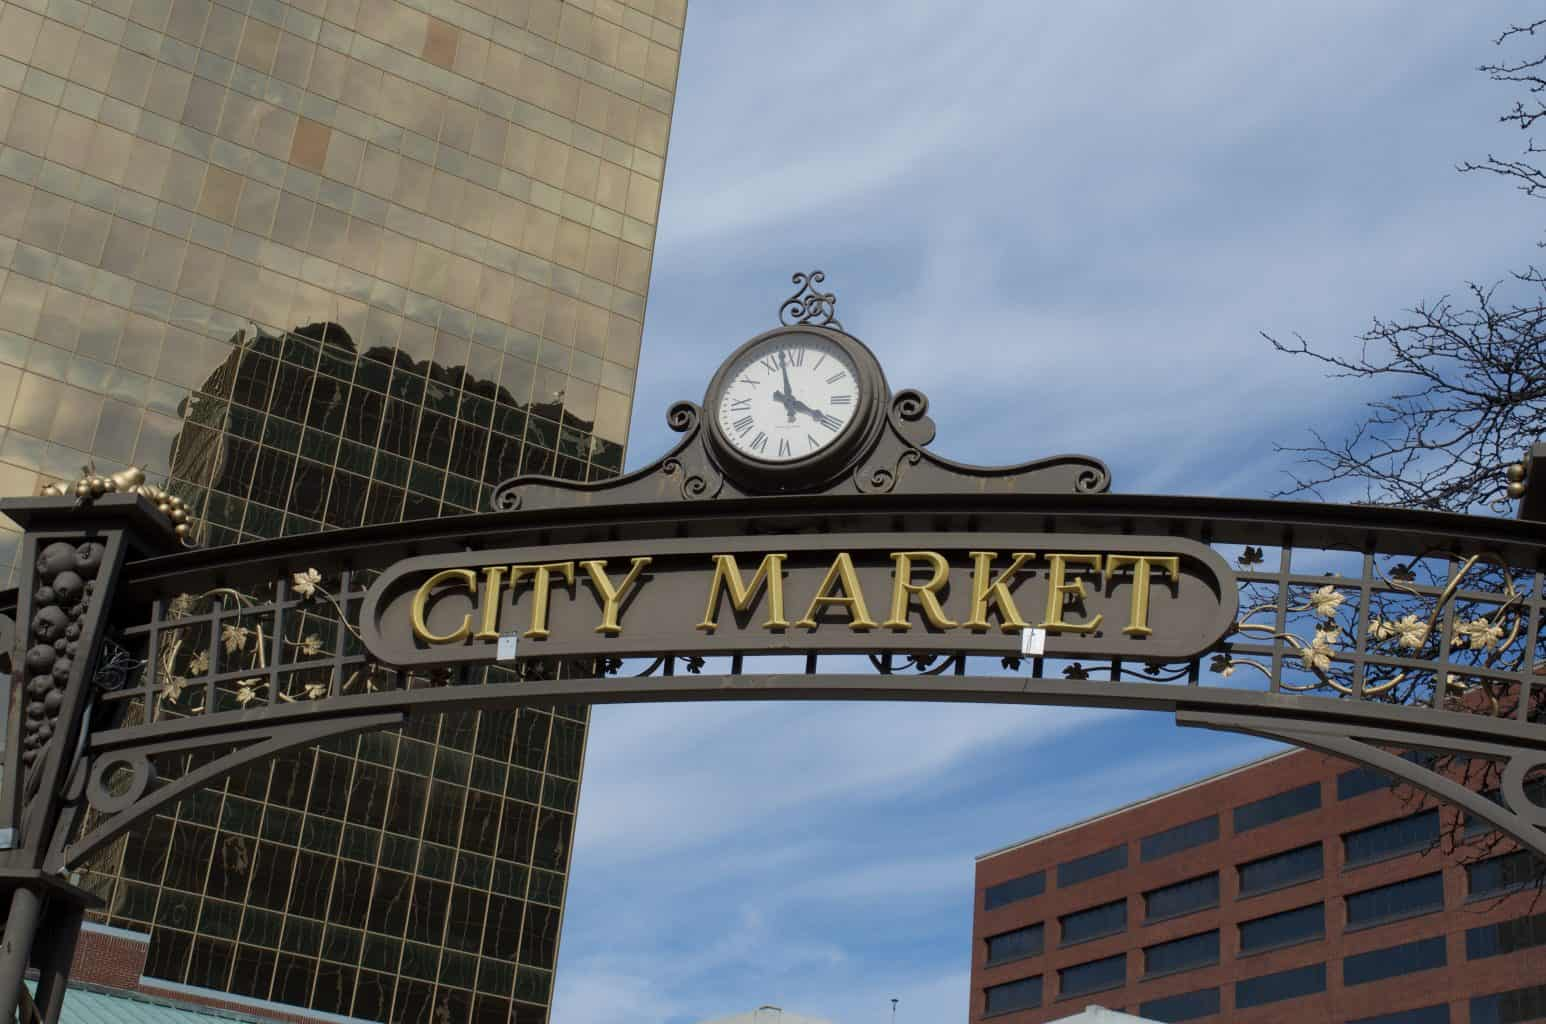 City Market Sign in Indianapolis, Indiana